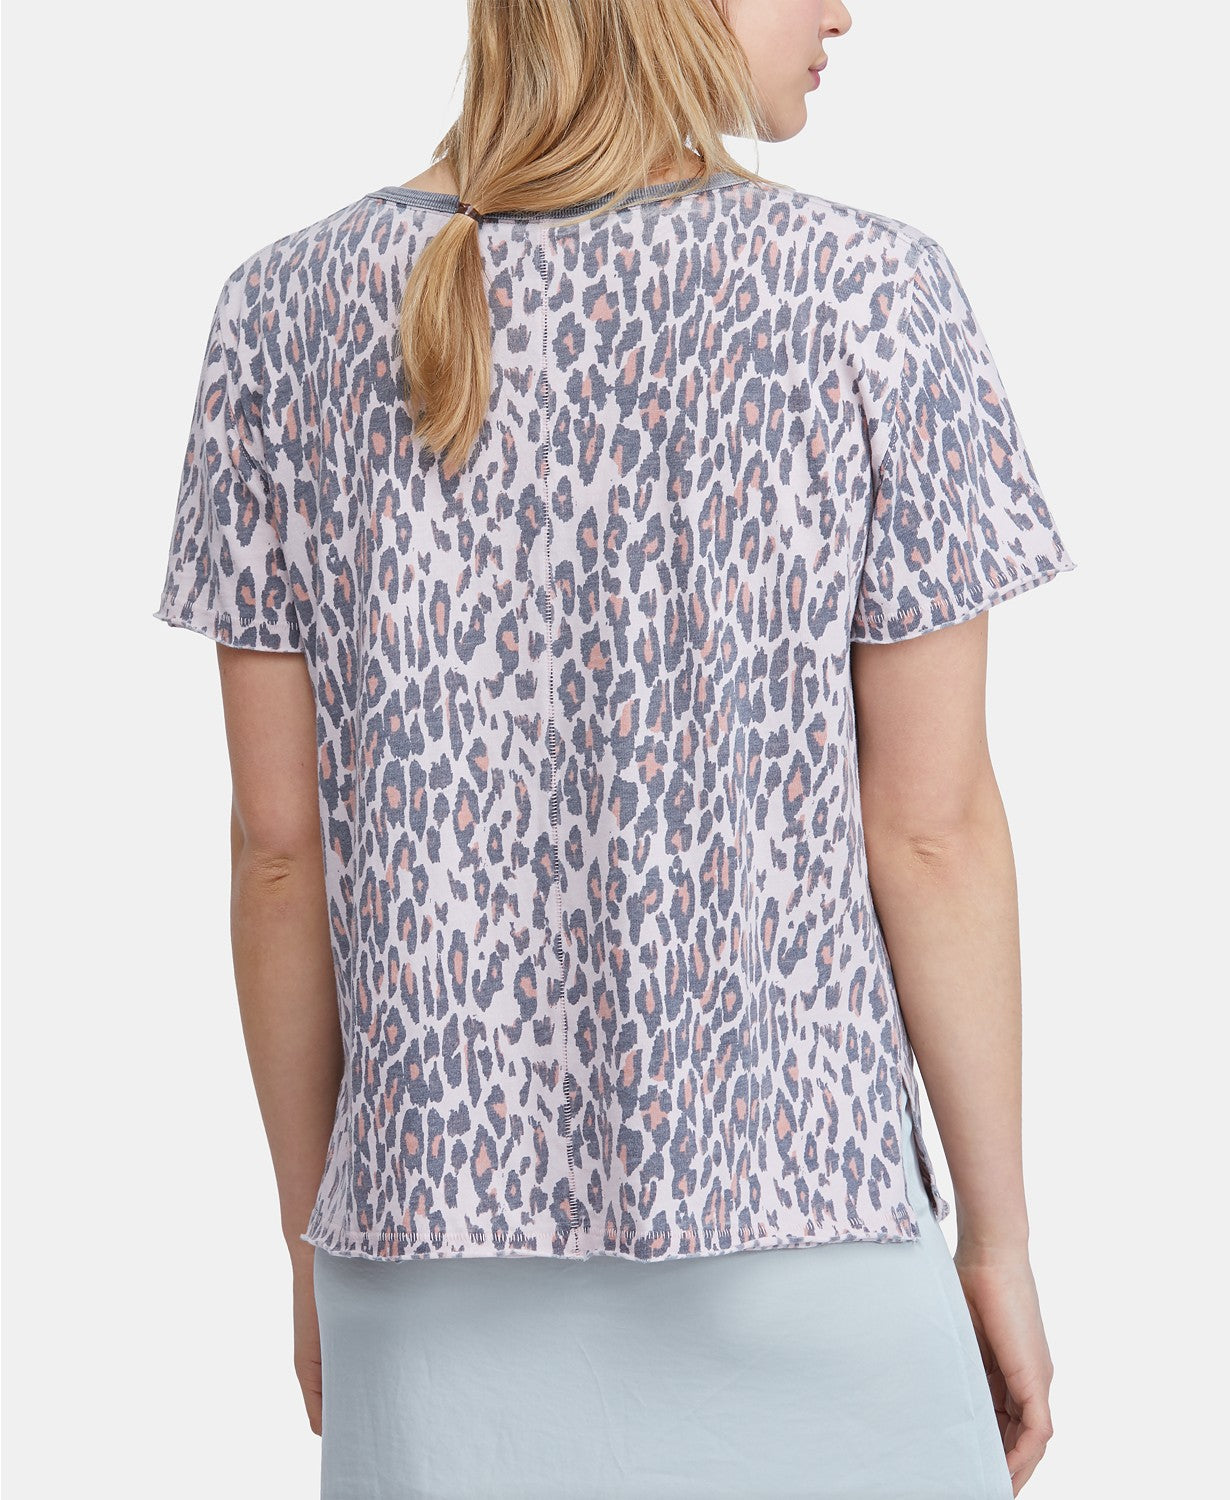 Freepeople printed shirt in rose